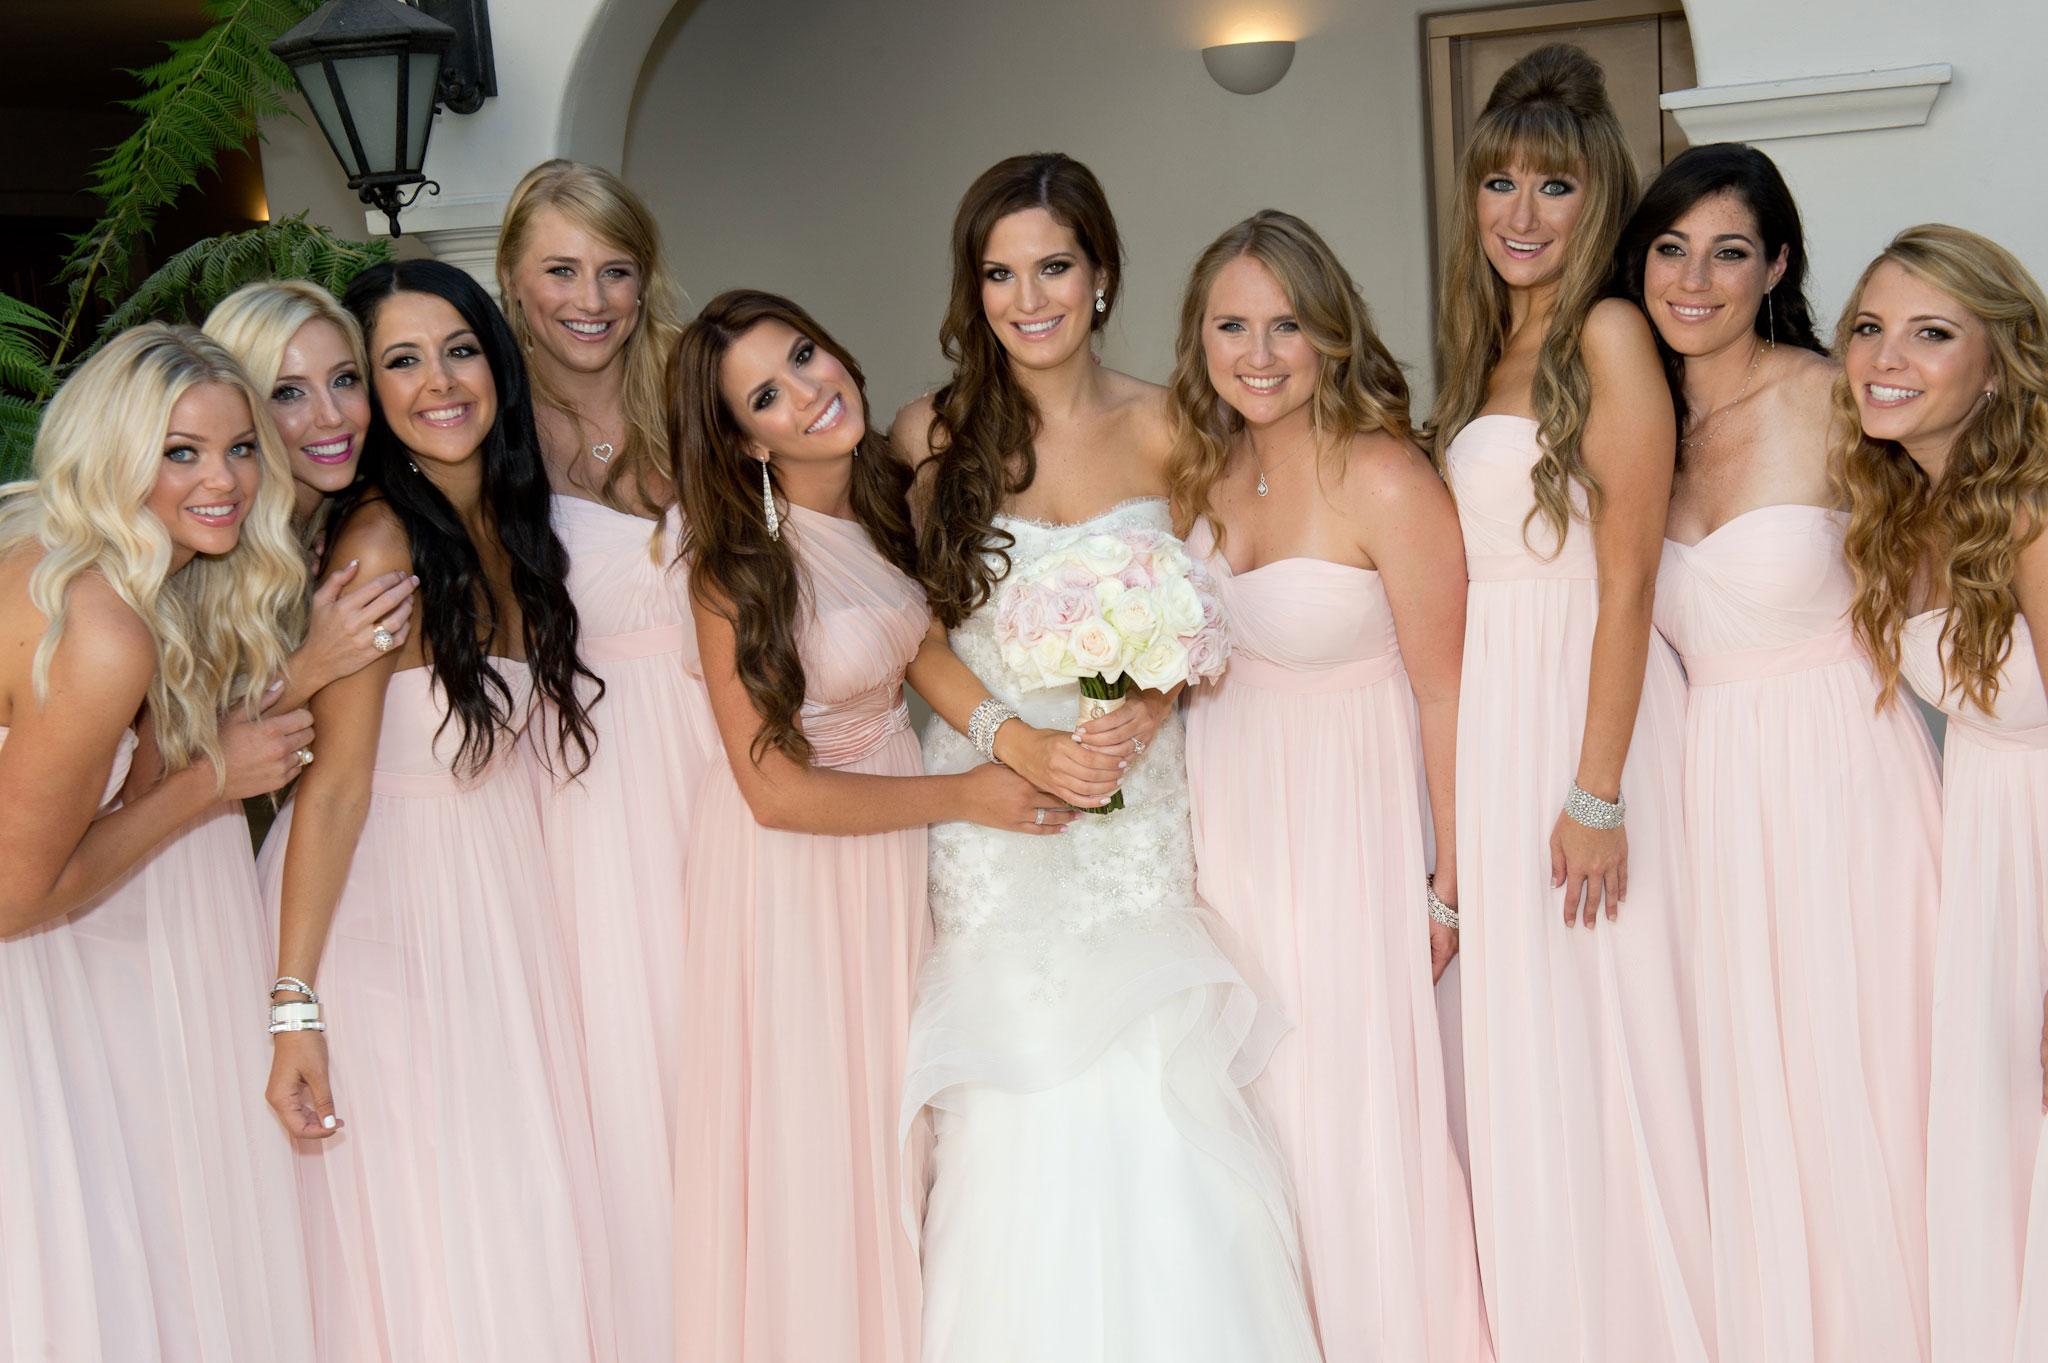 Bridesmaid dresses blush bridesmaid gowns from real weddings bride with strapless bridesmaid dresses long blush ombrellifo Image collections